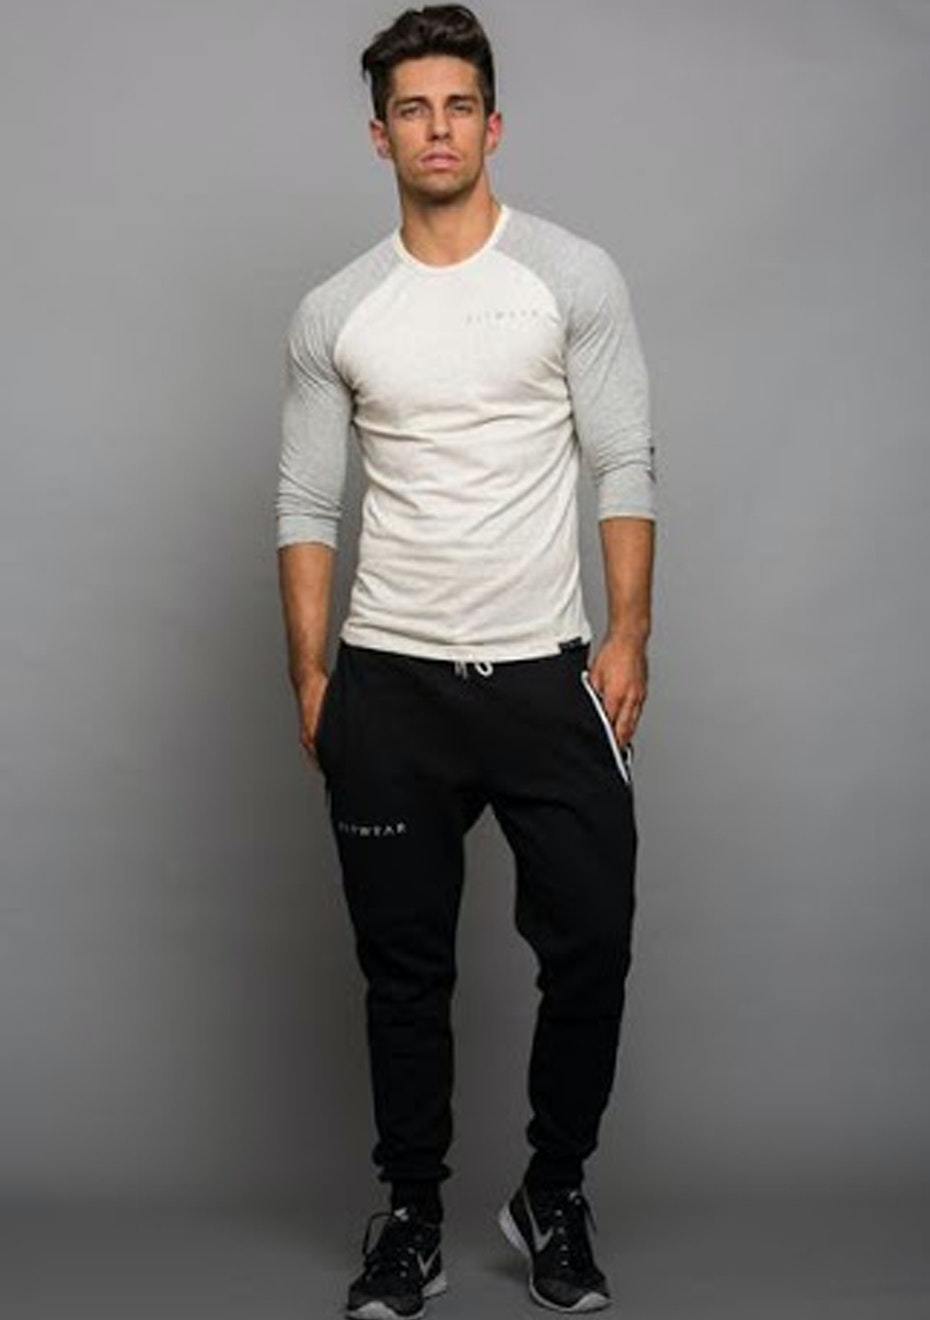 Fitwear Pursuit Sweats - Black